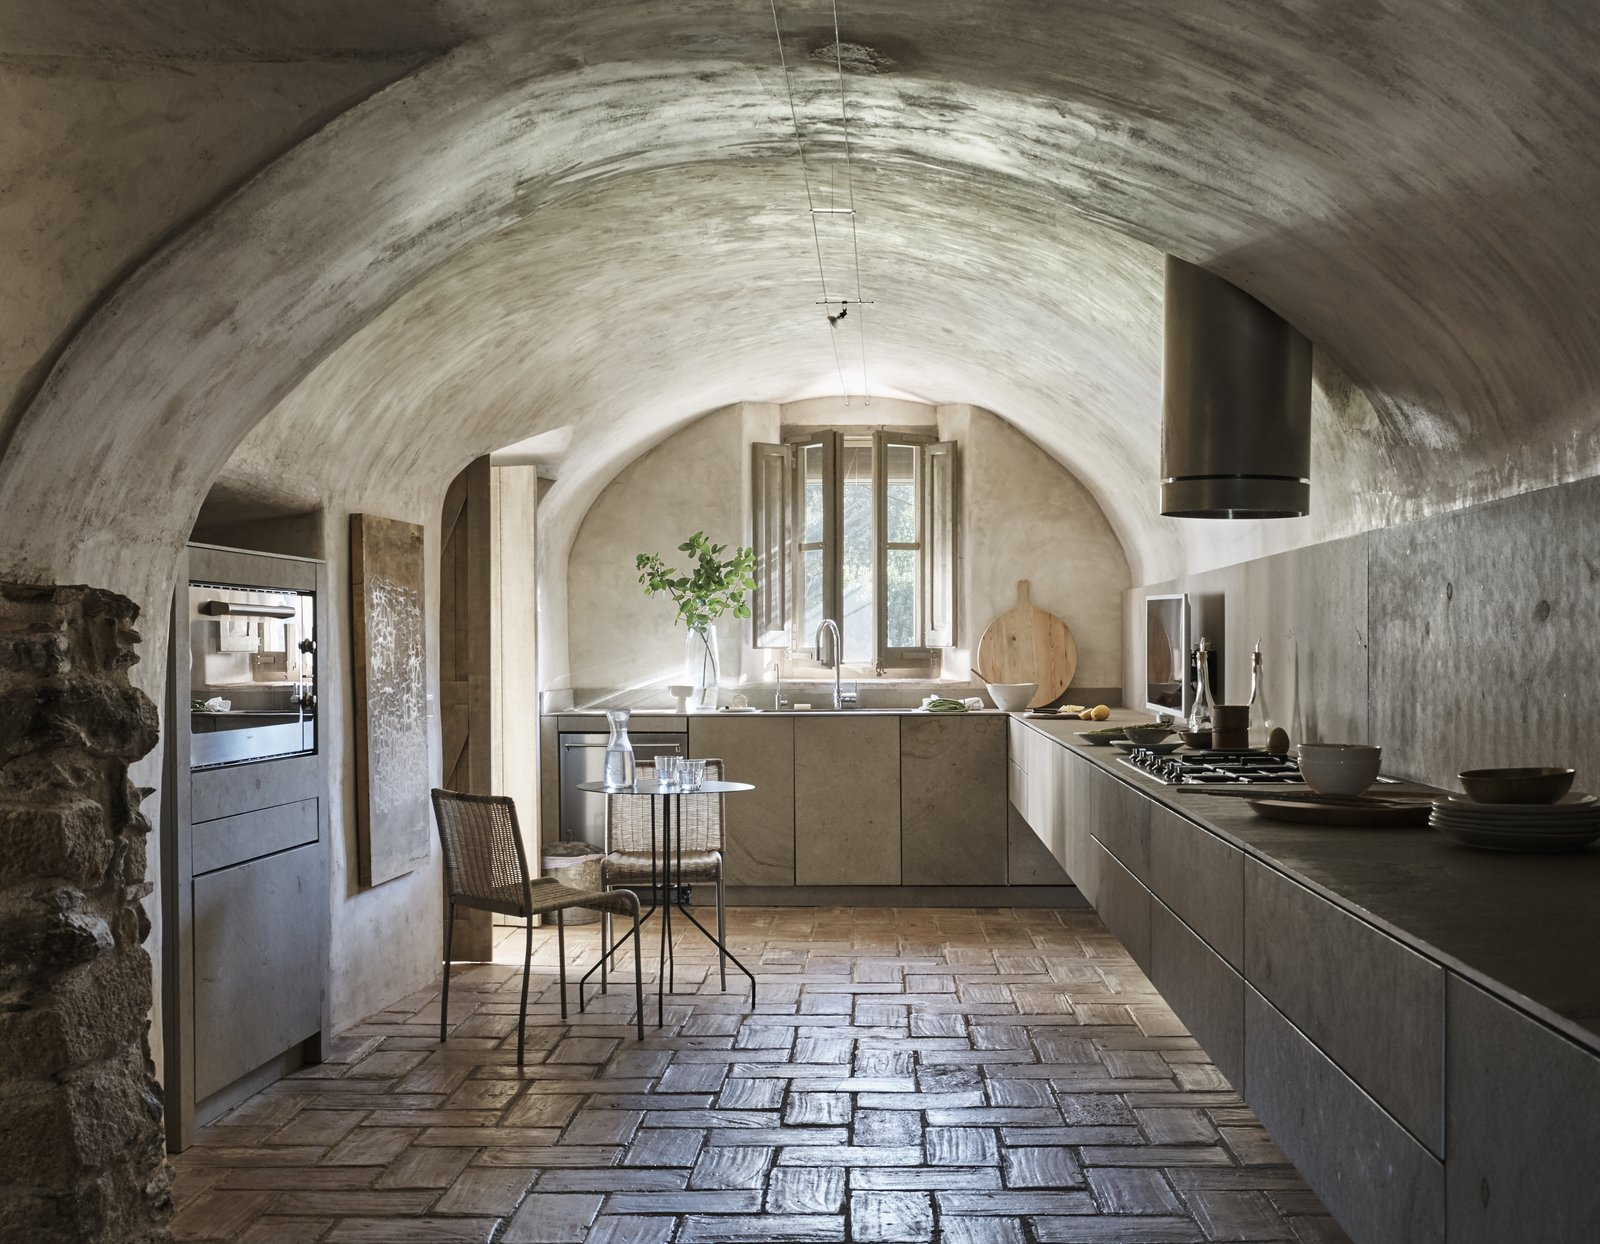 the-allstone-kitchen-collection-designed-by-joan-lao-design-studio.jpg